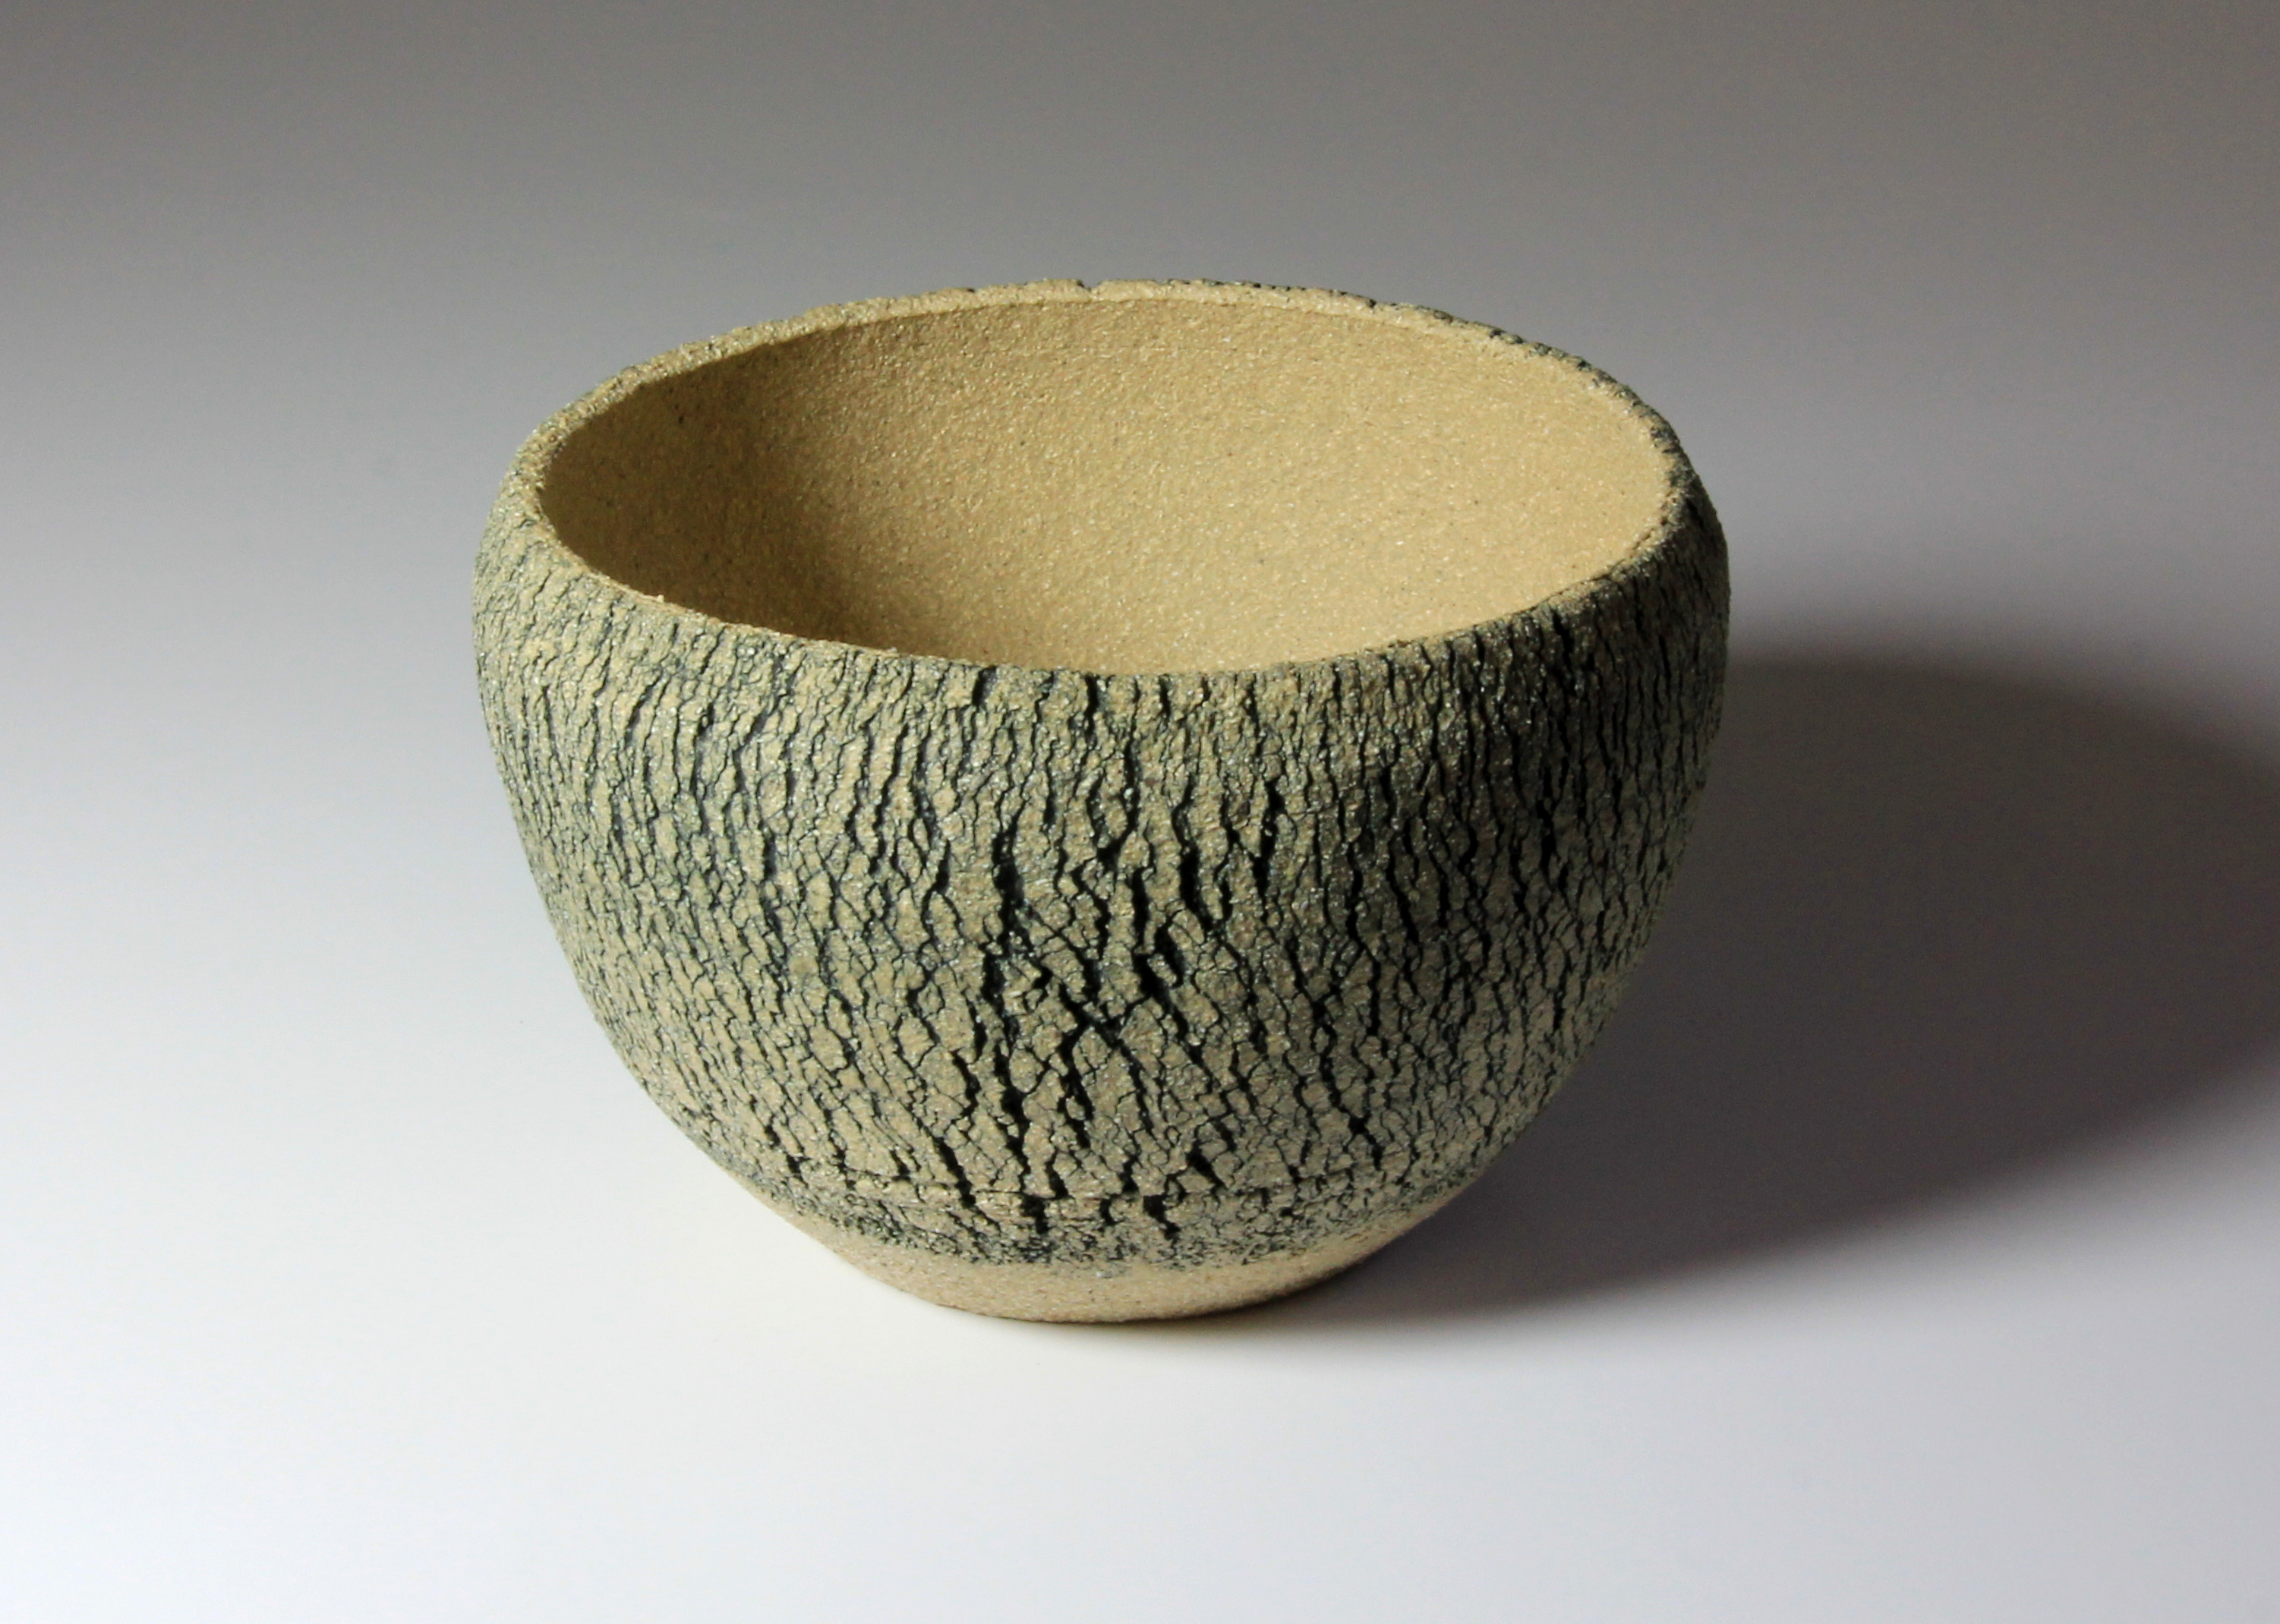 Emmeline Butler Limestone Pavement Medium Bowl